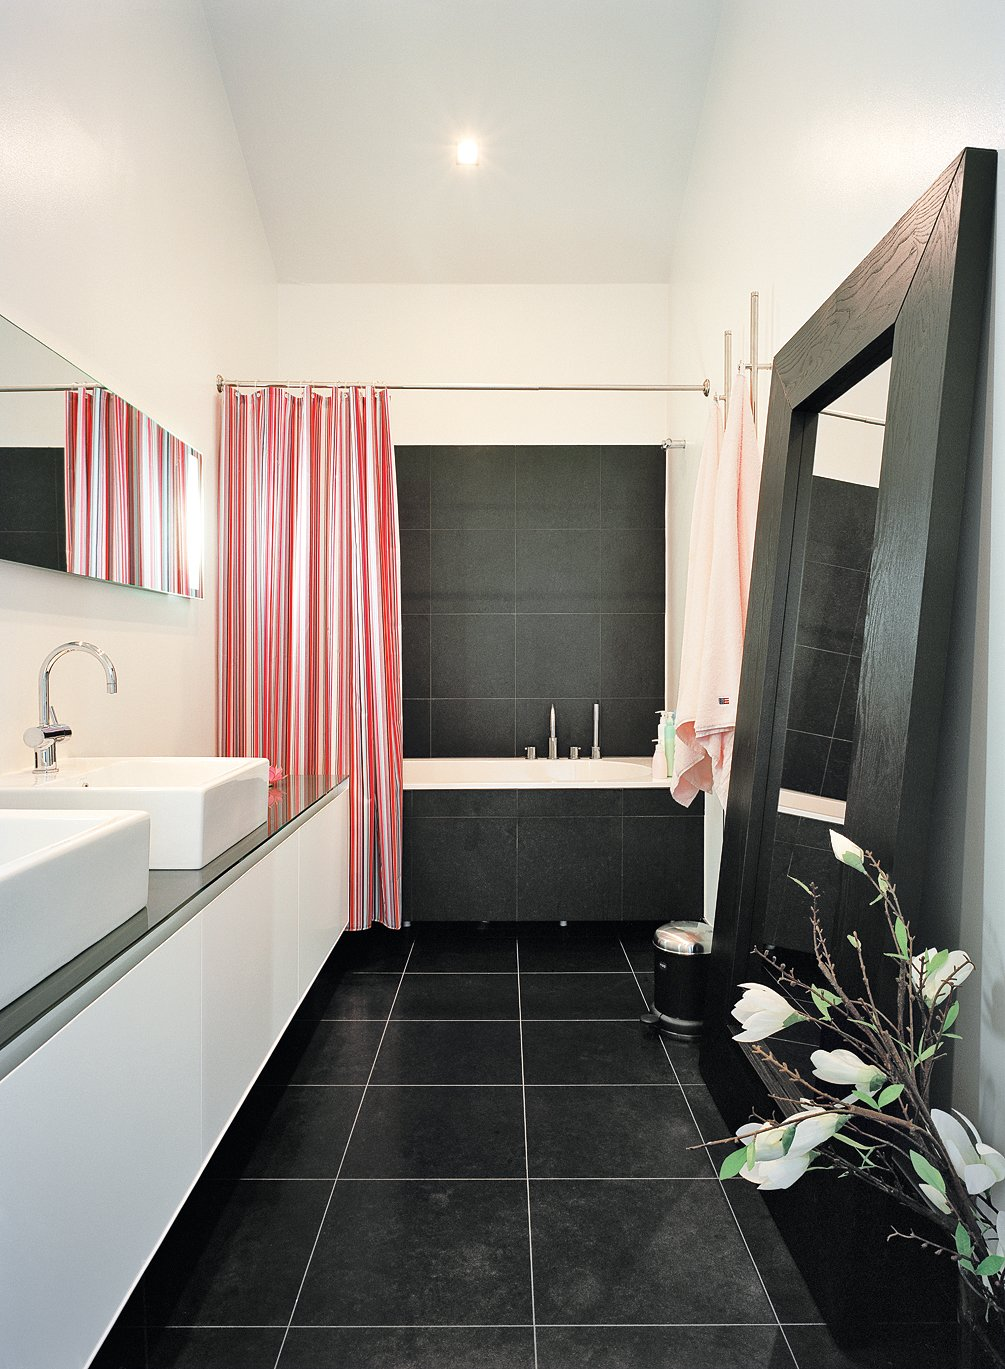 Bath, Vessel, Ceiling, Ceramic Tile, Alcove, and Drop In The master bathroom is one of few spaces that lacks windows, but it opens onto the brilliantly daylit master bedroom.  Best Bath Alcove Ceramic Tile Photos from Sum of Its Parts